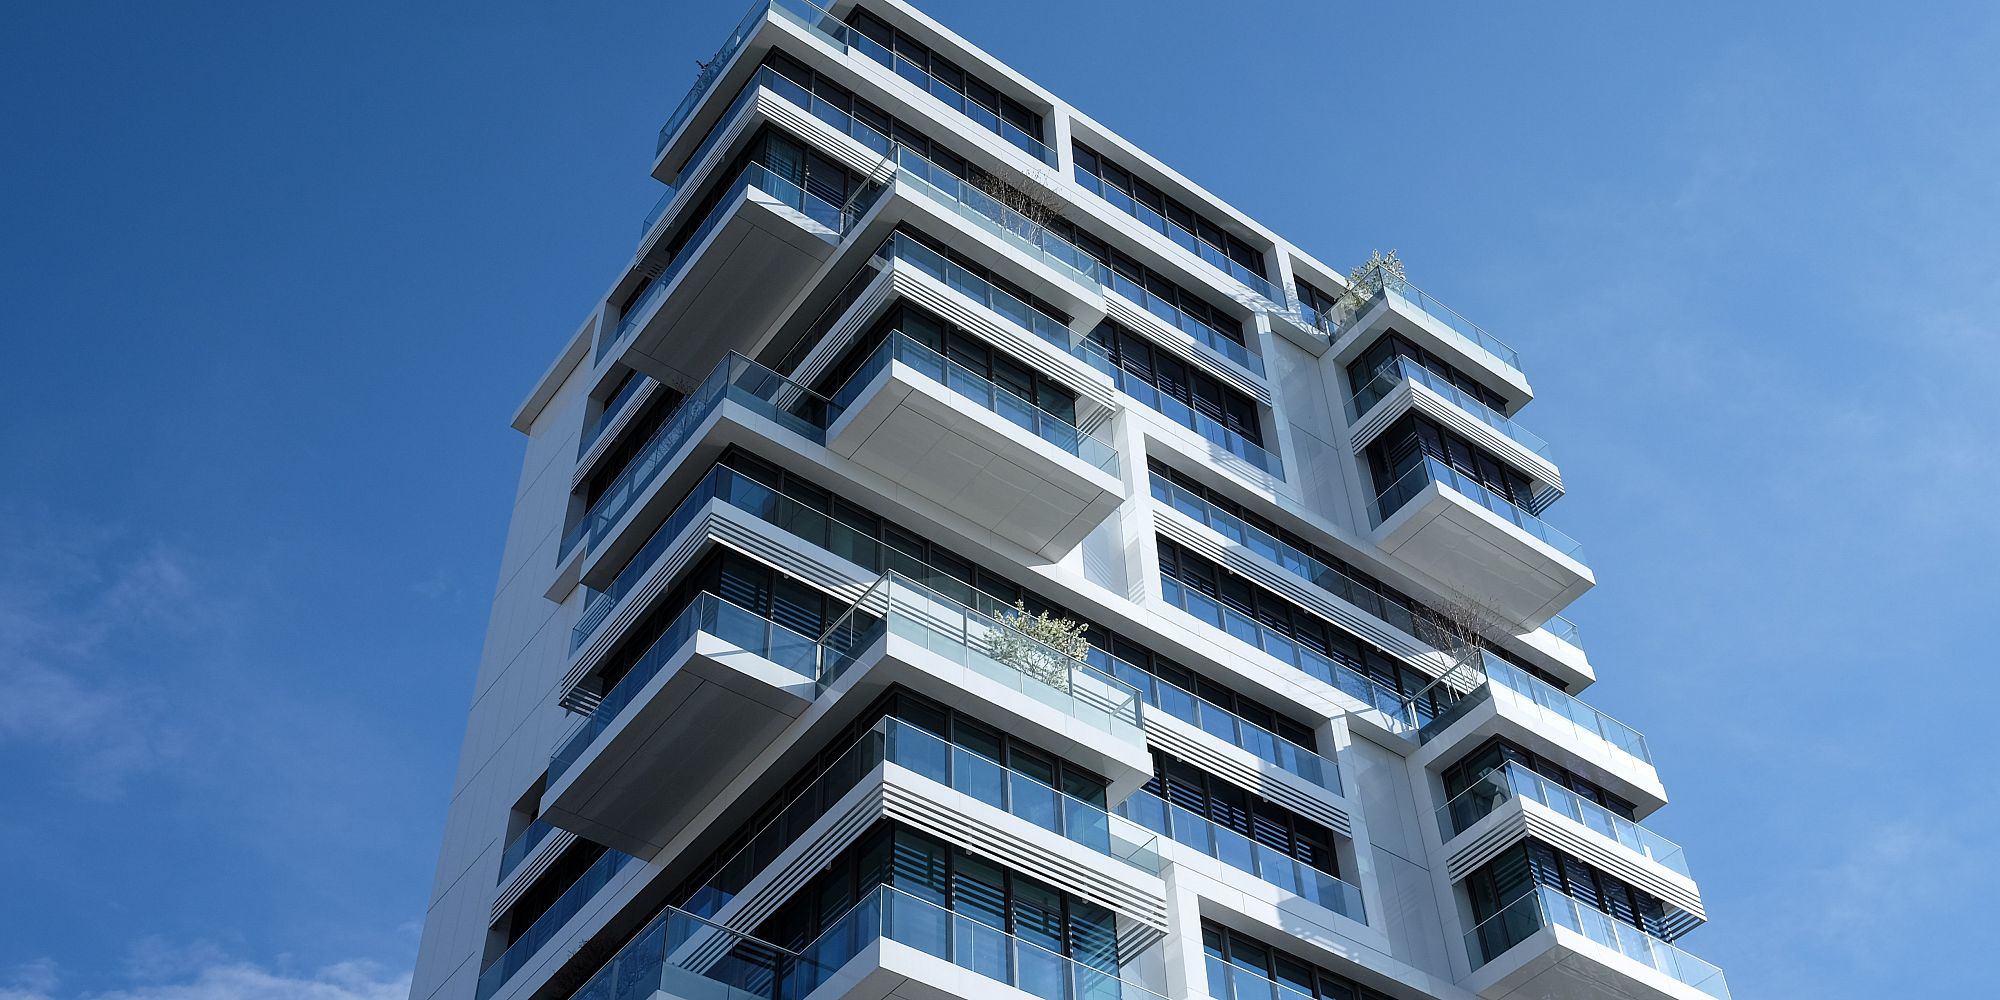 What are the benefits of living in a condo?